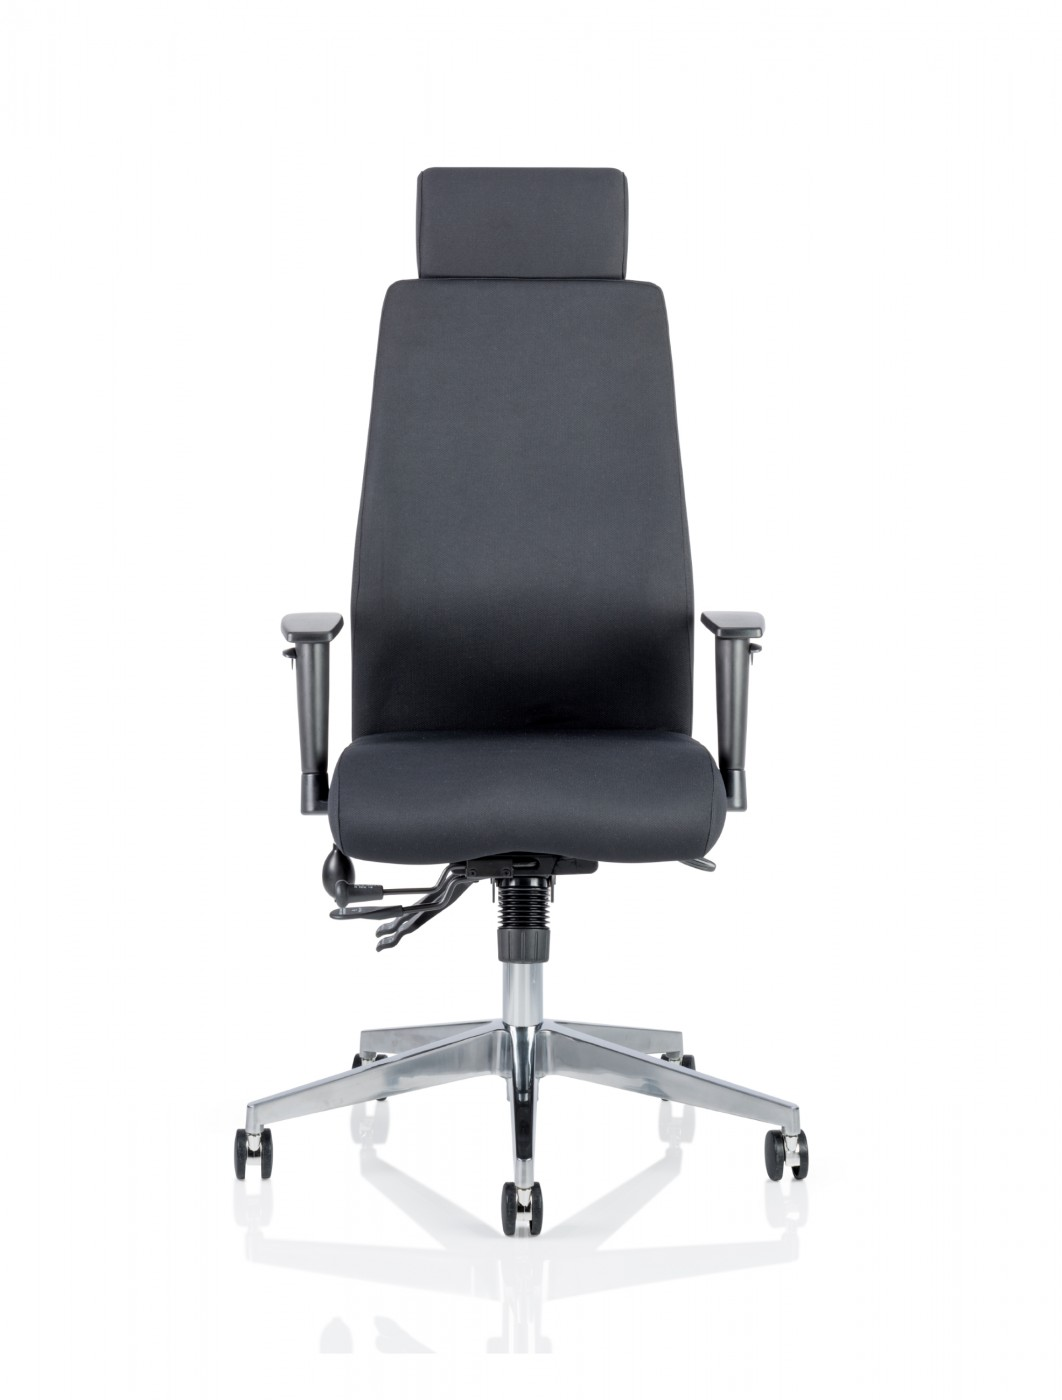 dynamic onyx office chair with headrest ivonyx01 ivonyx02